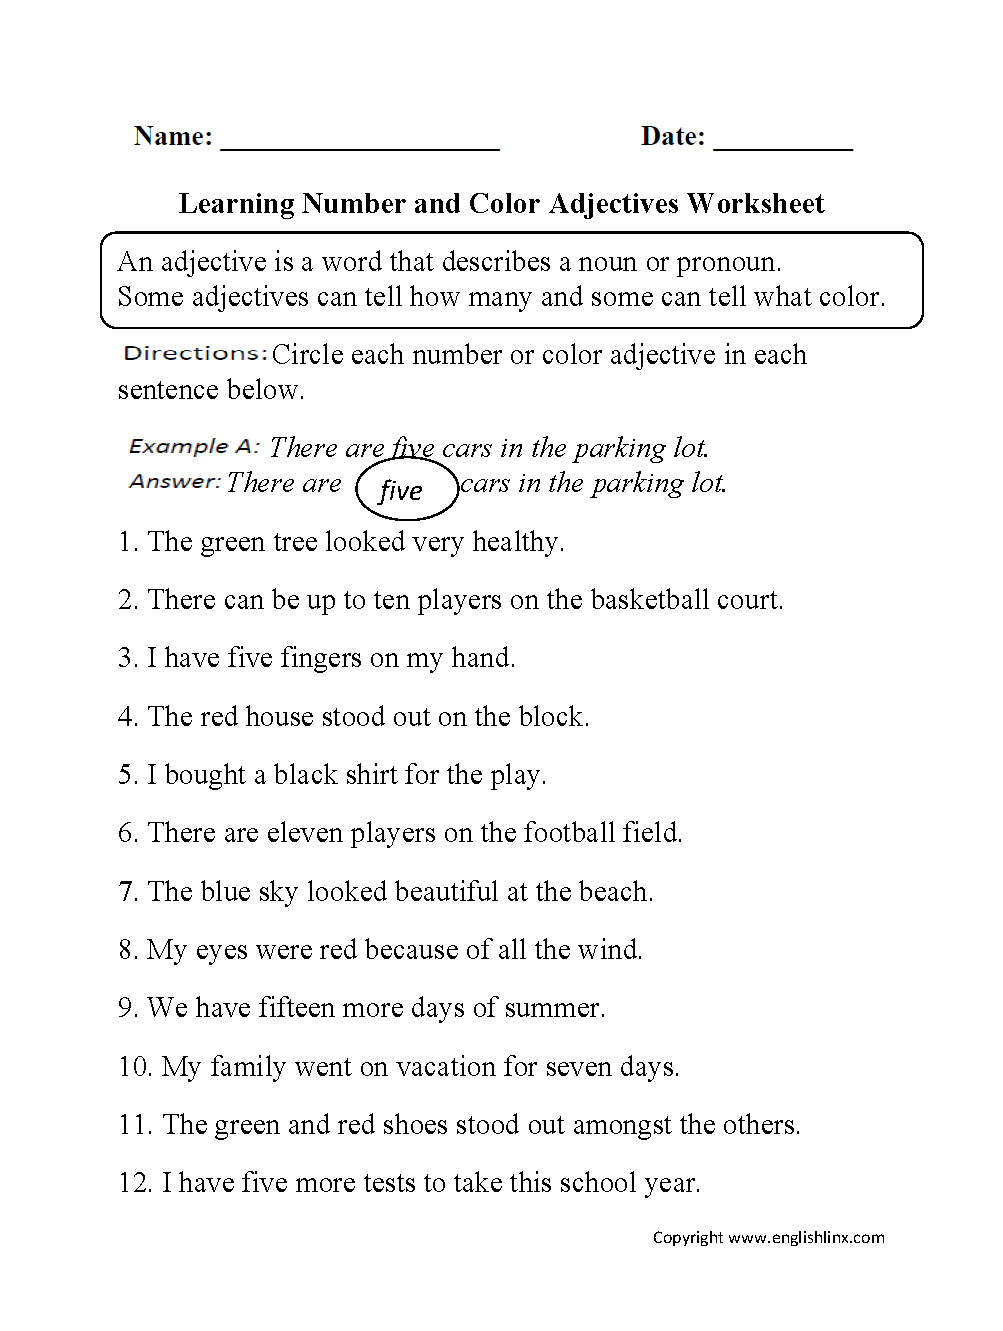 Worksheets Parts Of Speech Worksheets parts speech worksheets adjective worksheets